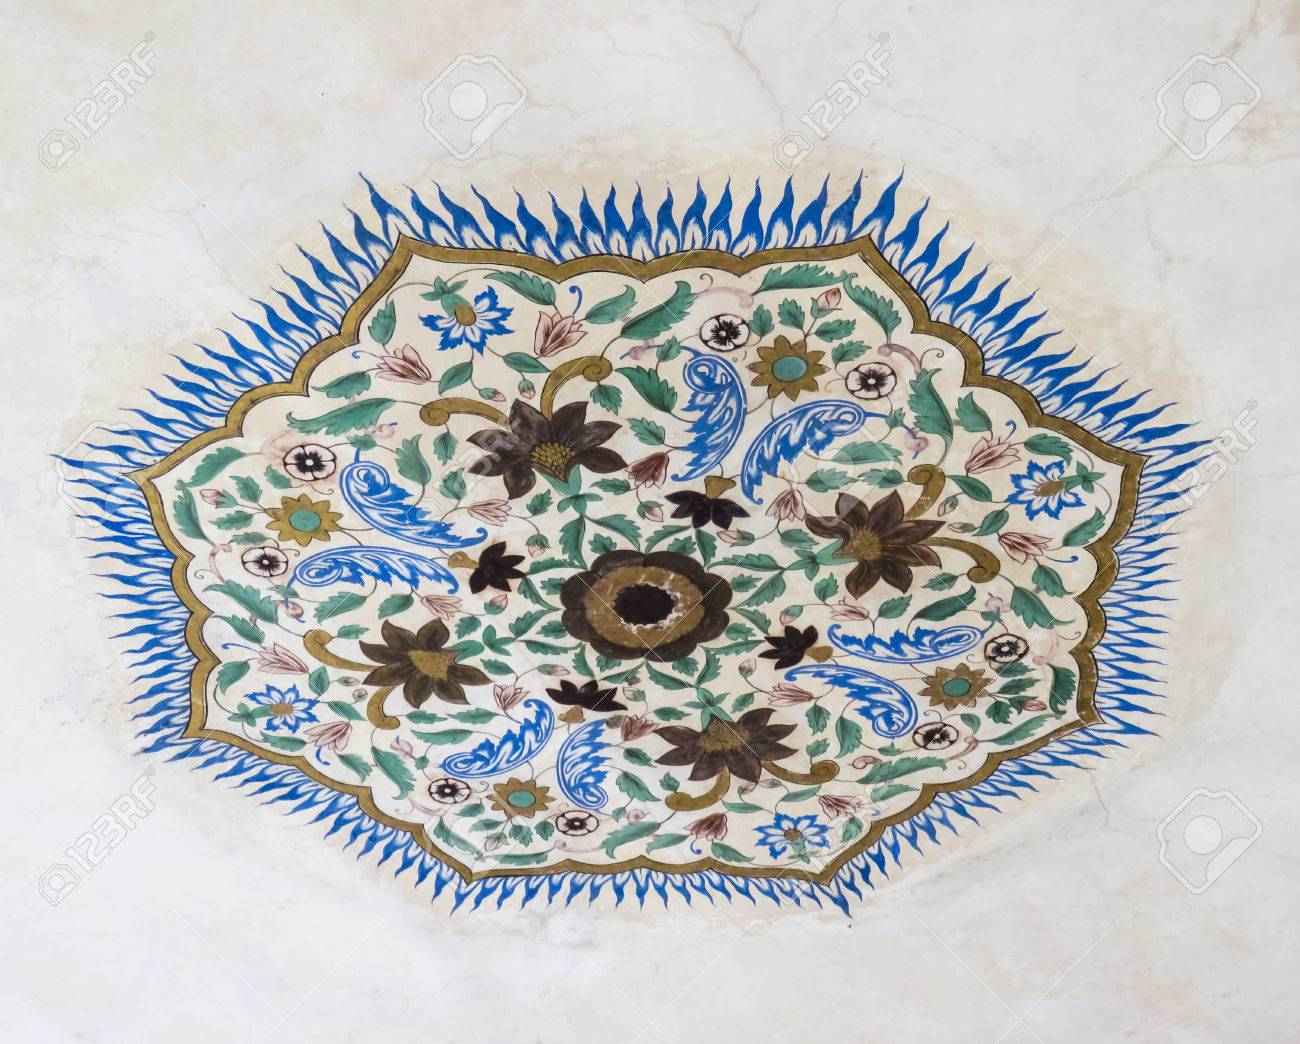 Artistic Handmade Wall Painting In Amber Fort Rajasthan India